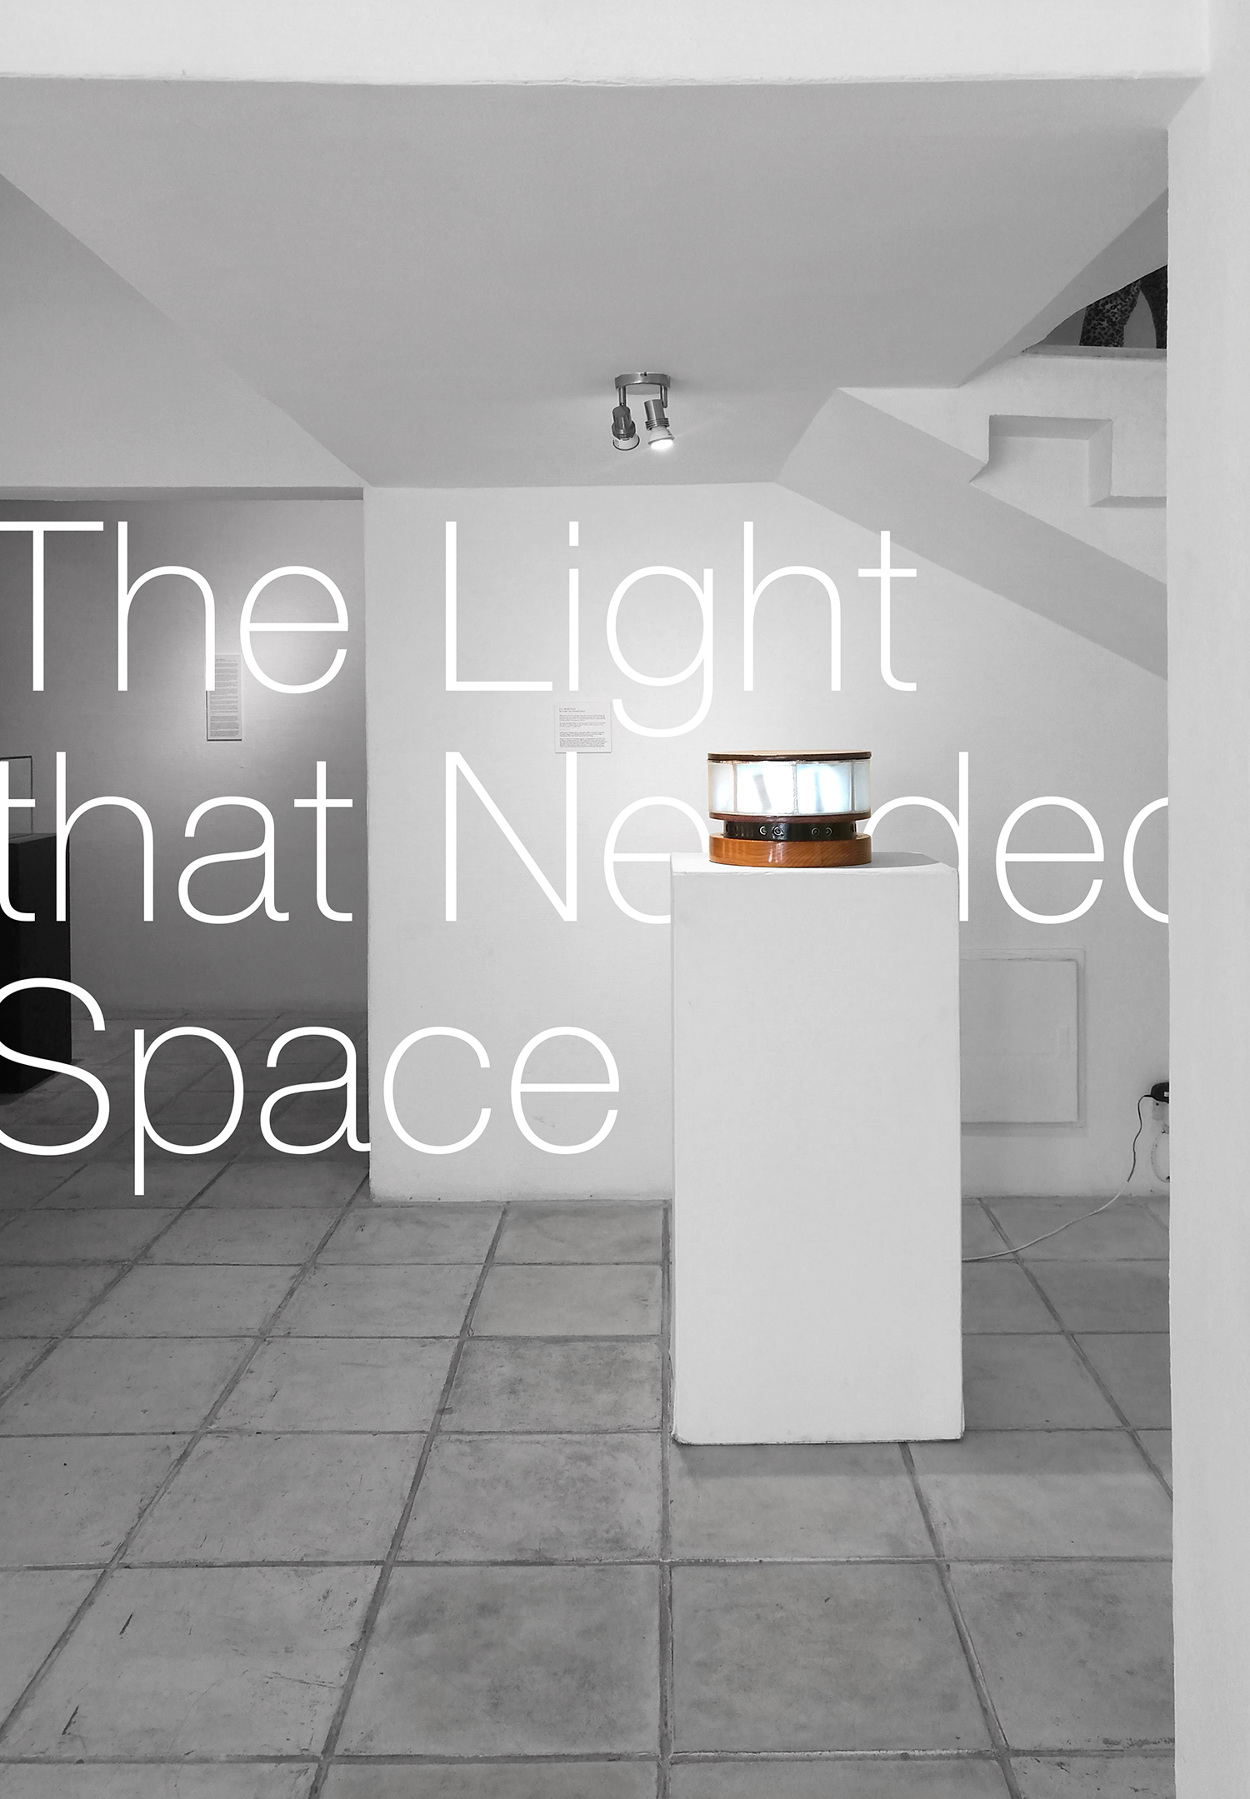 Perceptive Object #4: The Light that Needed Space